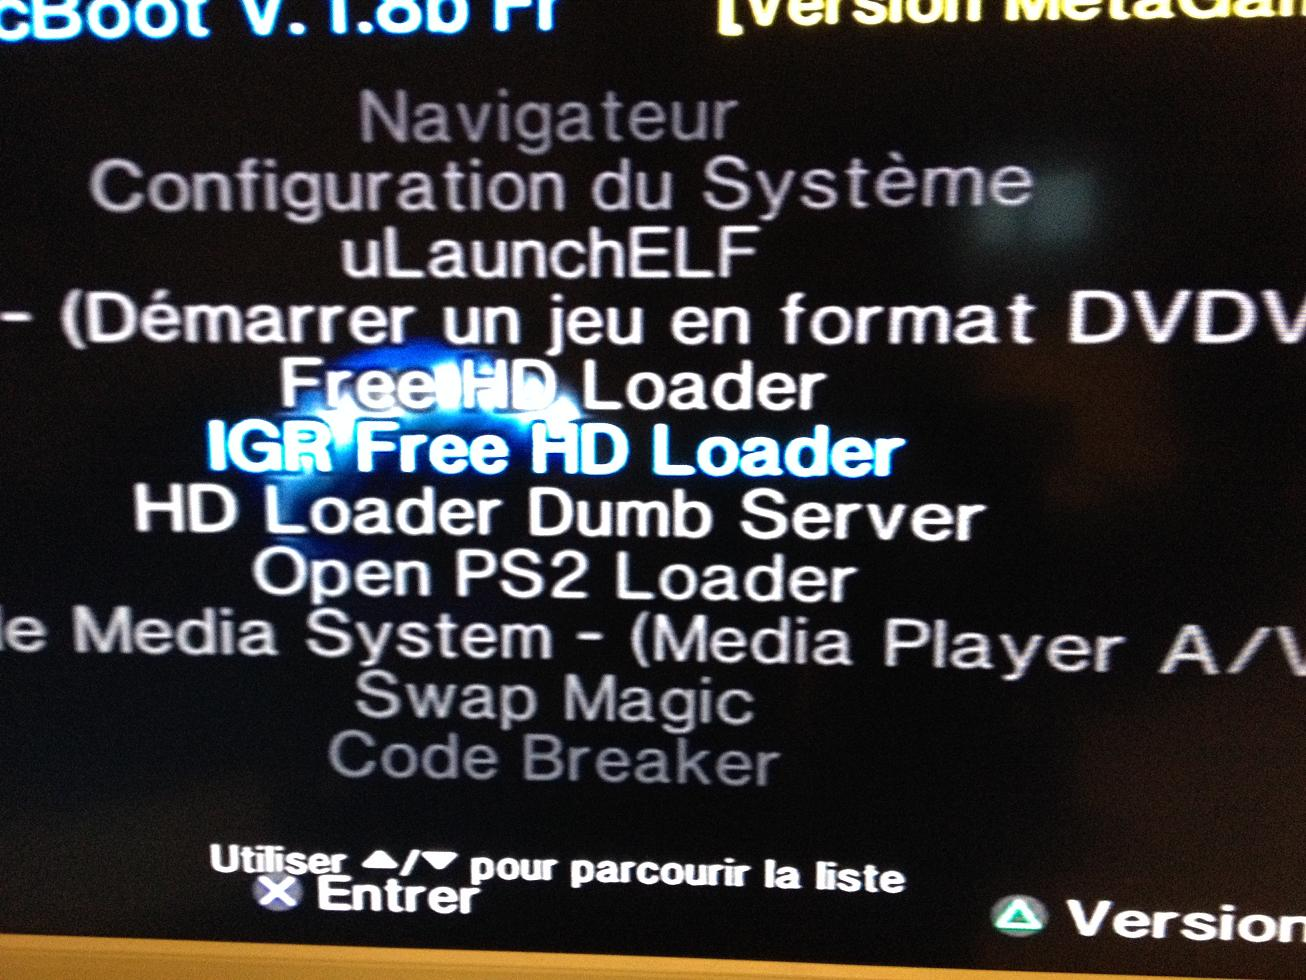 Vds] Lot PS2 fat HDD/freemcboot (vendu)